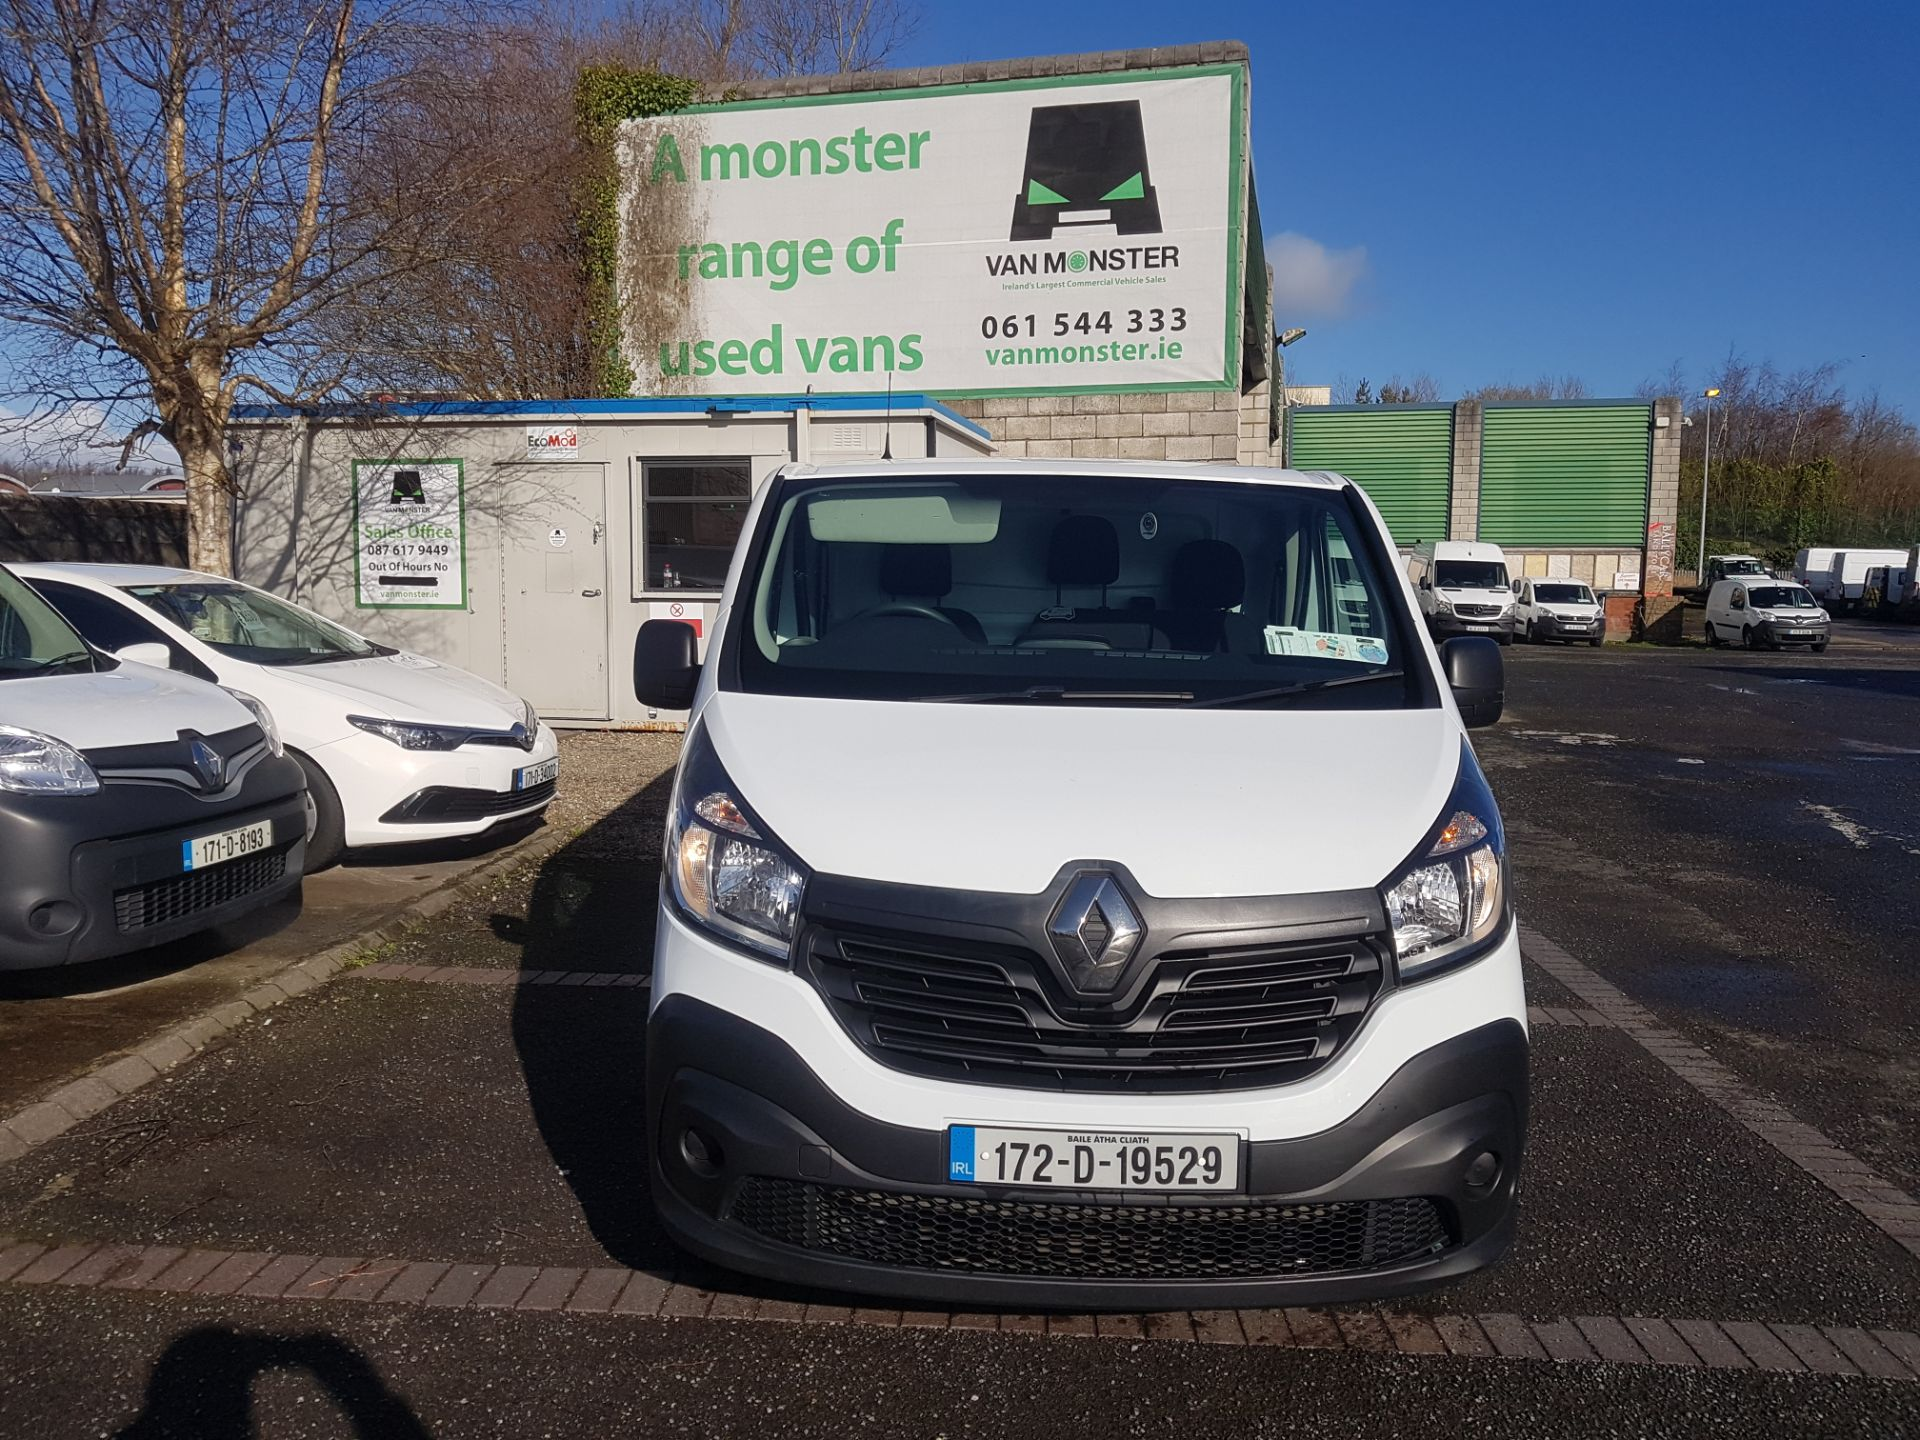 2017 Renault Trafic LL29 DCI 120 Business 3DR (172D19529) Image 8